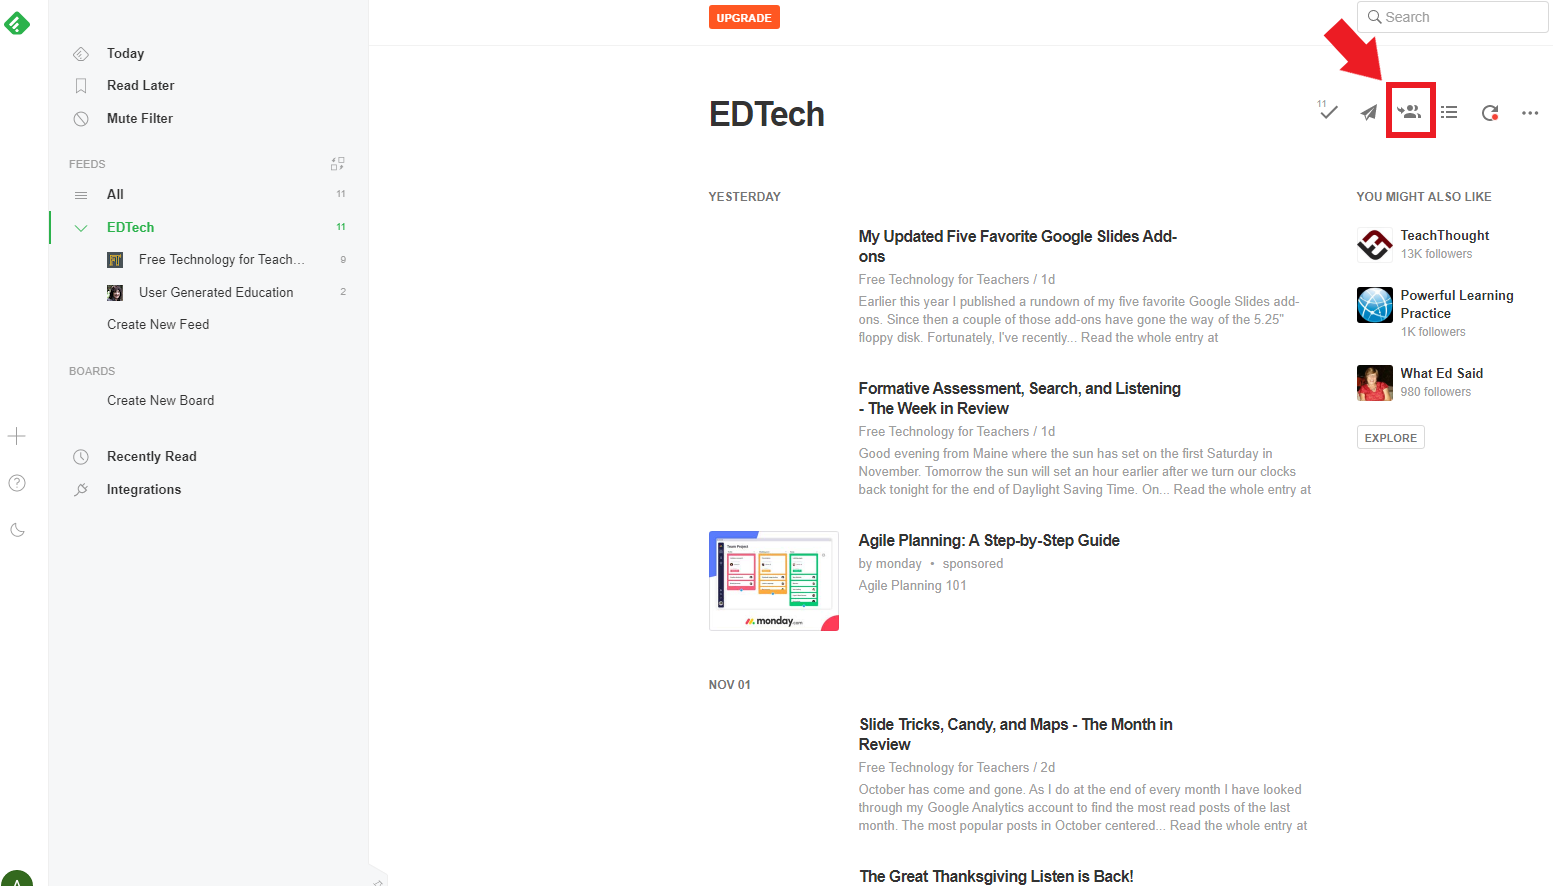 Image of Feedly homepage feed